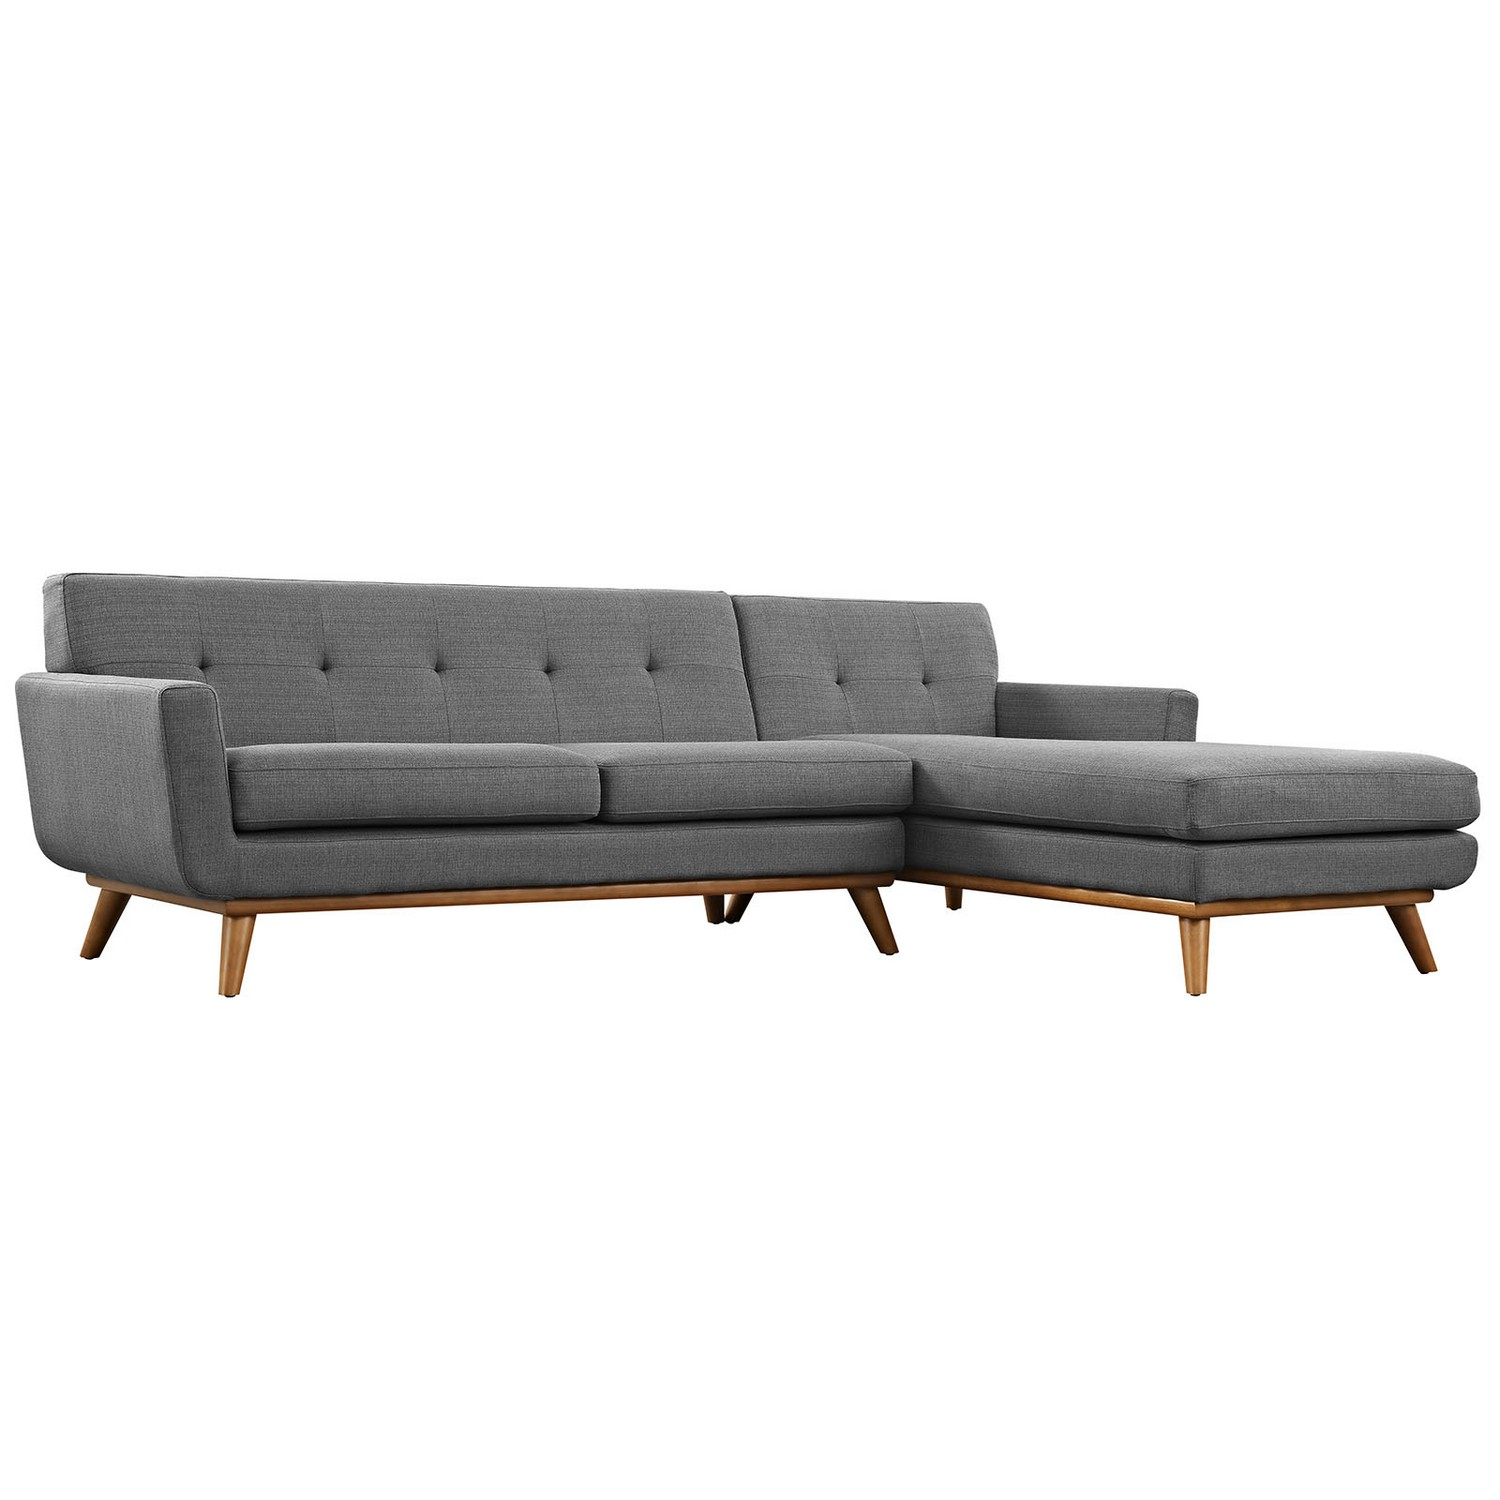 Modway Engage Right-Facing Sectional Sofa - Gray